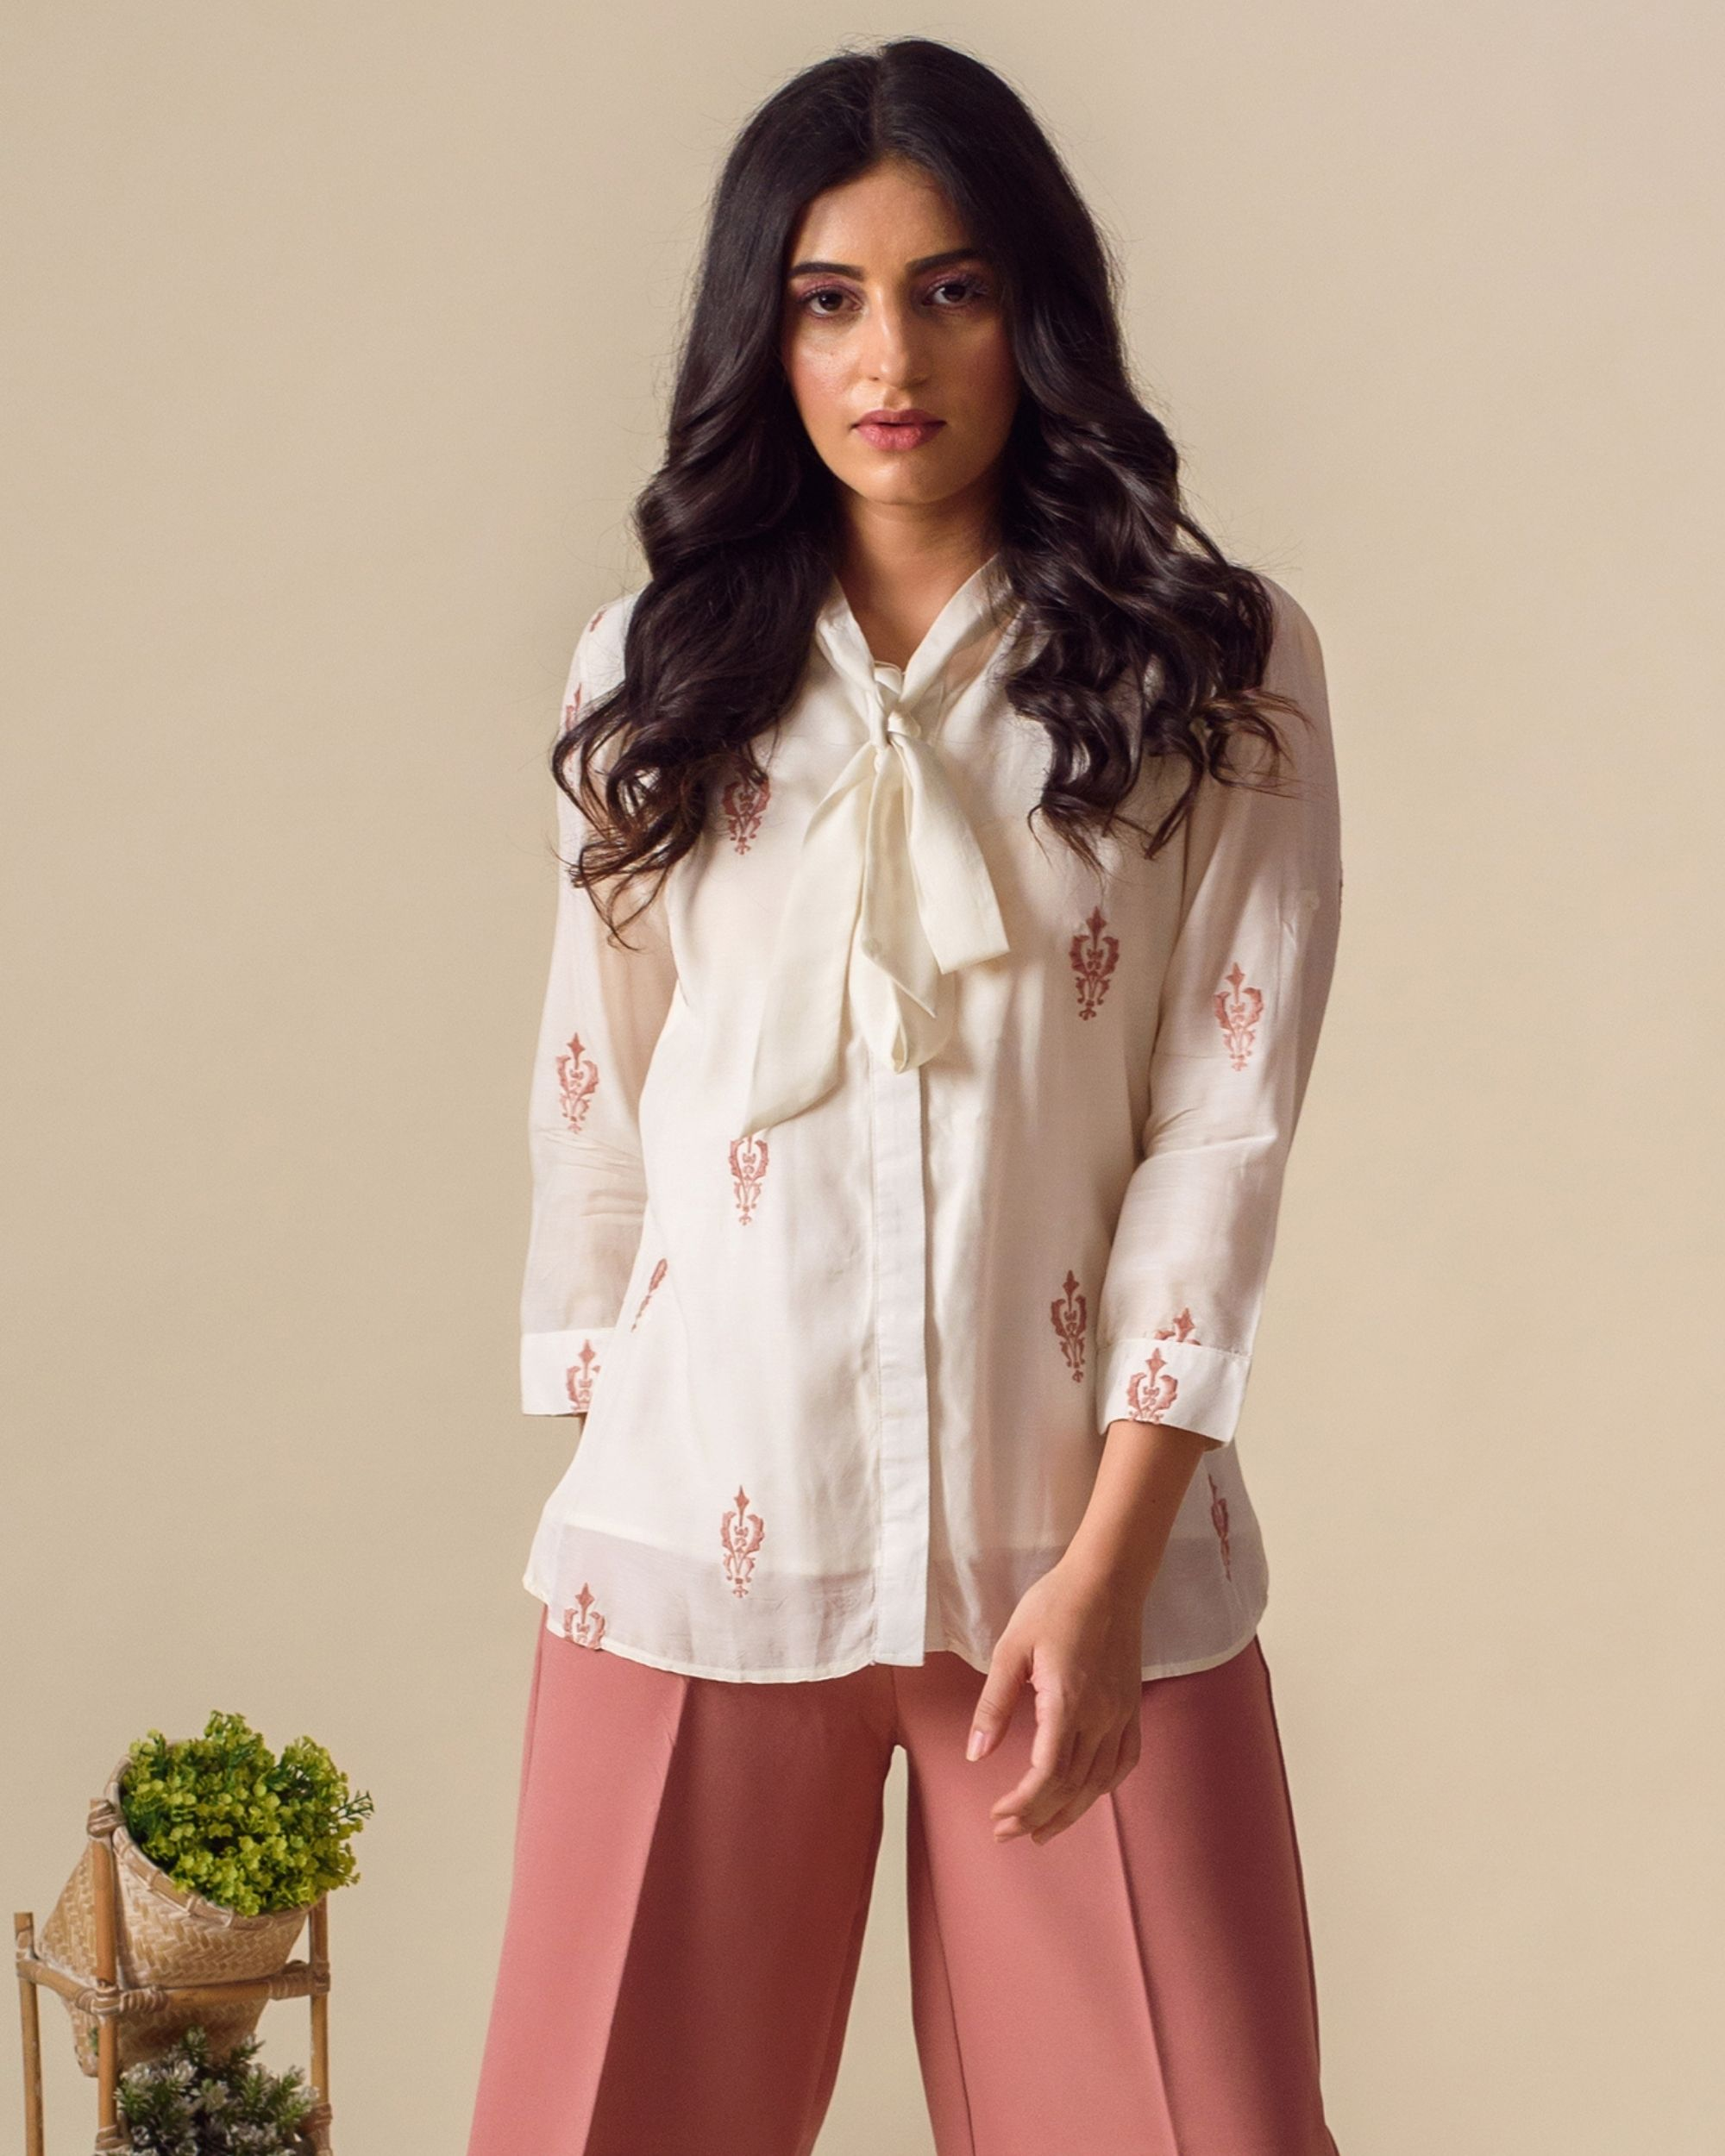 Off white embroidered tie-up shirt